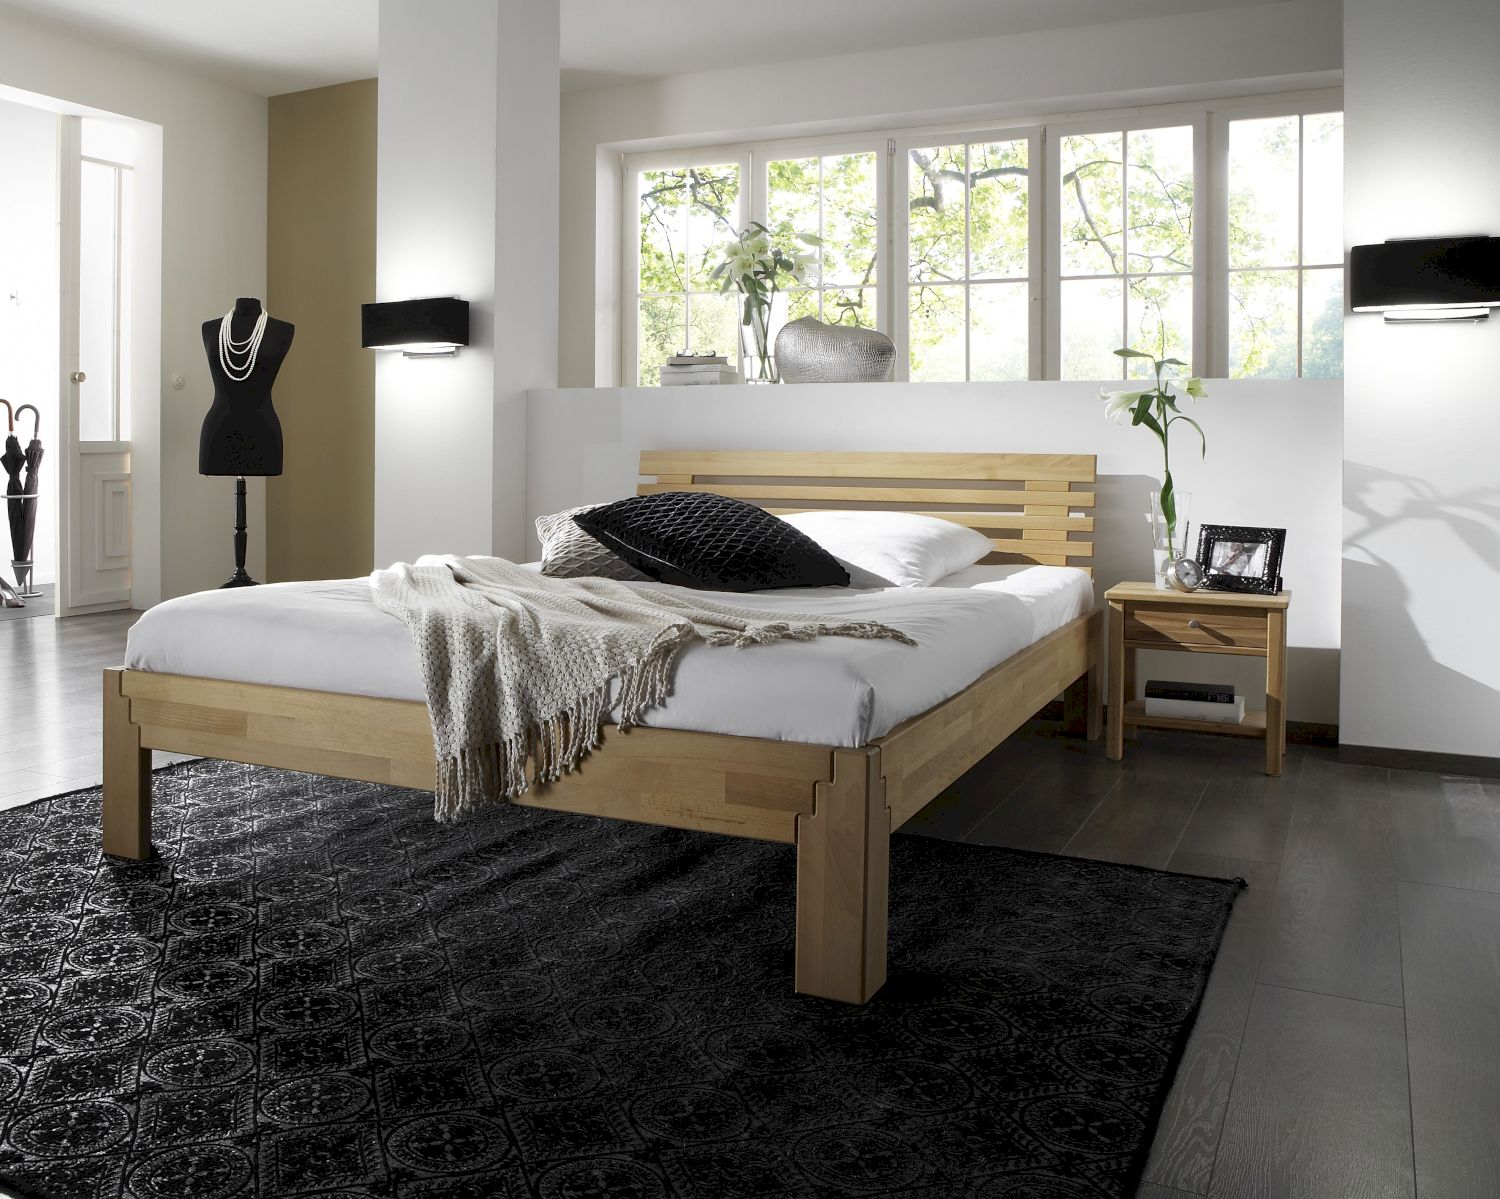 massivholz bett system z bestellen bei m bel. Black Bedroom Furniture Sets. Home Design Ideas